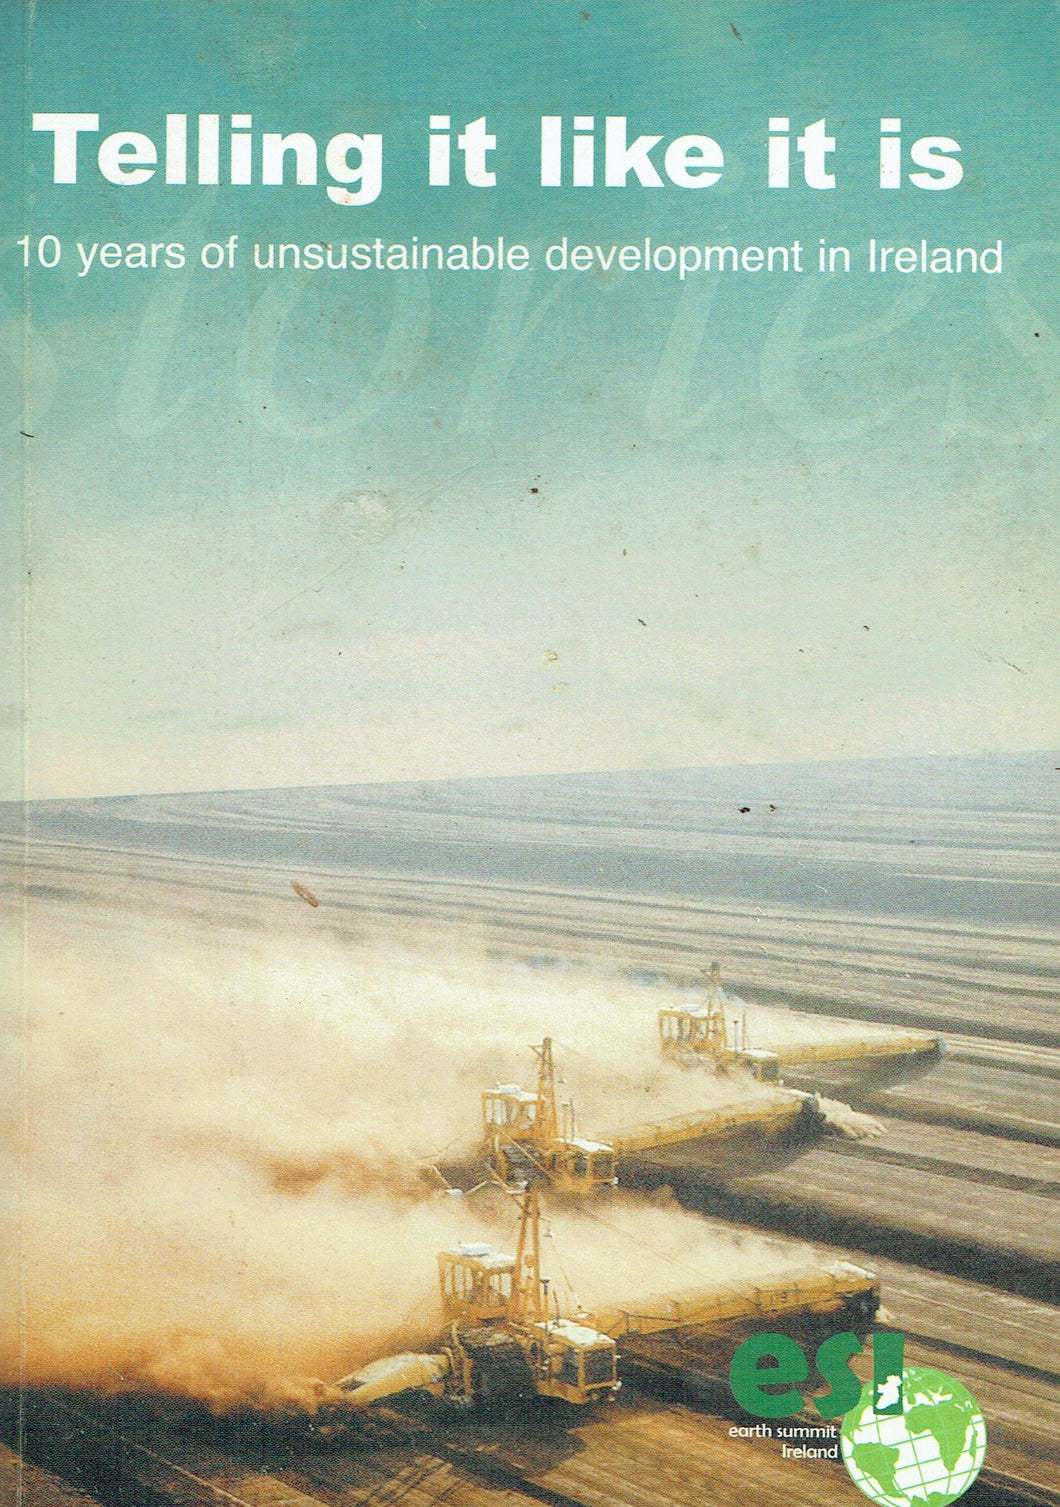 Telling It Like It Is: 10 Years of Unsustainable Development in Ireland